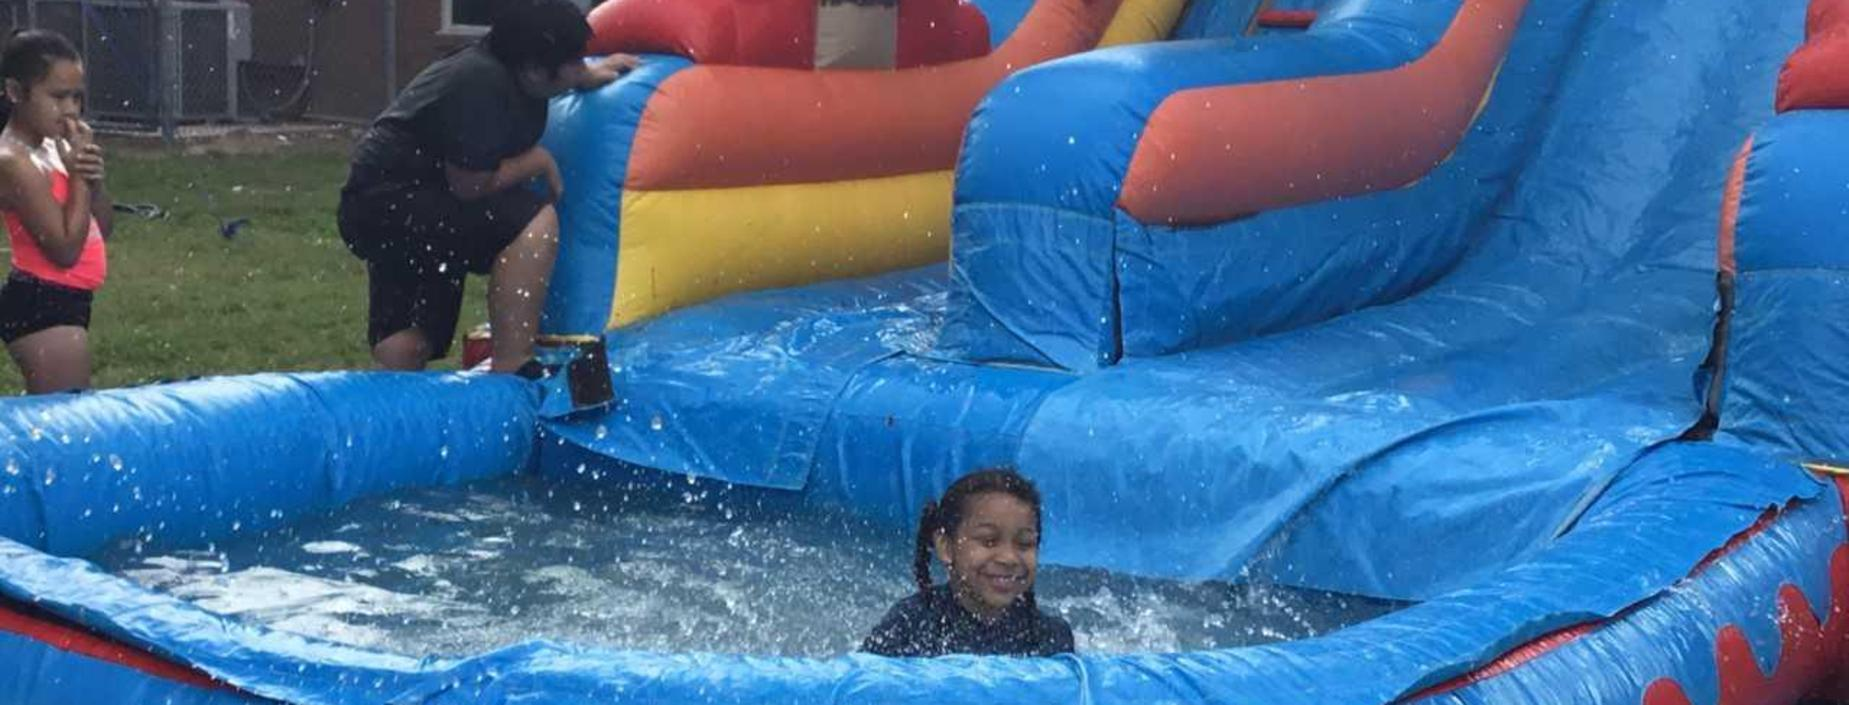 water day image